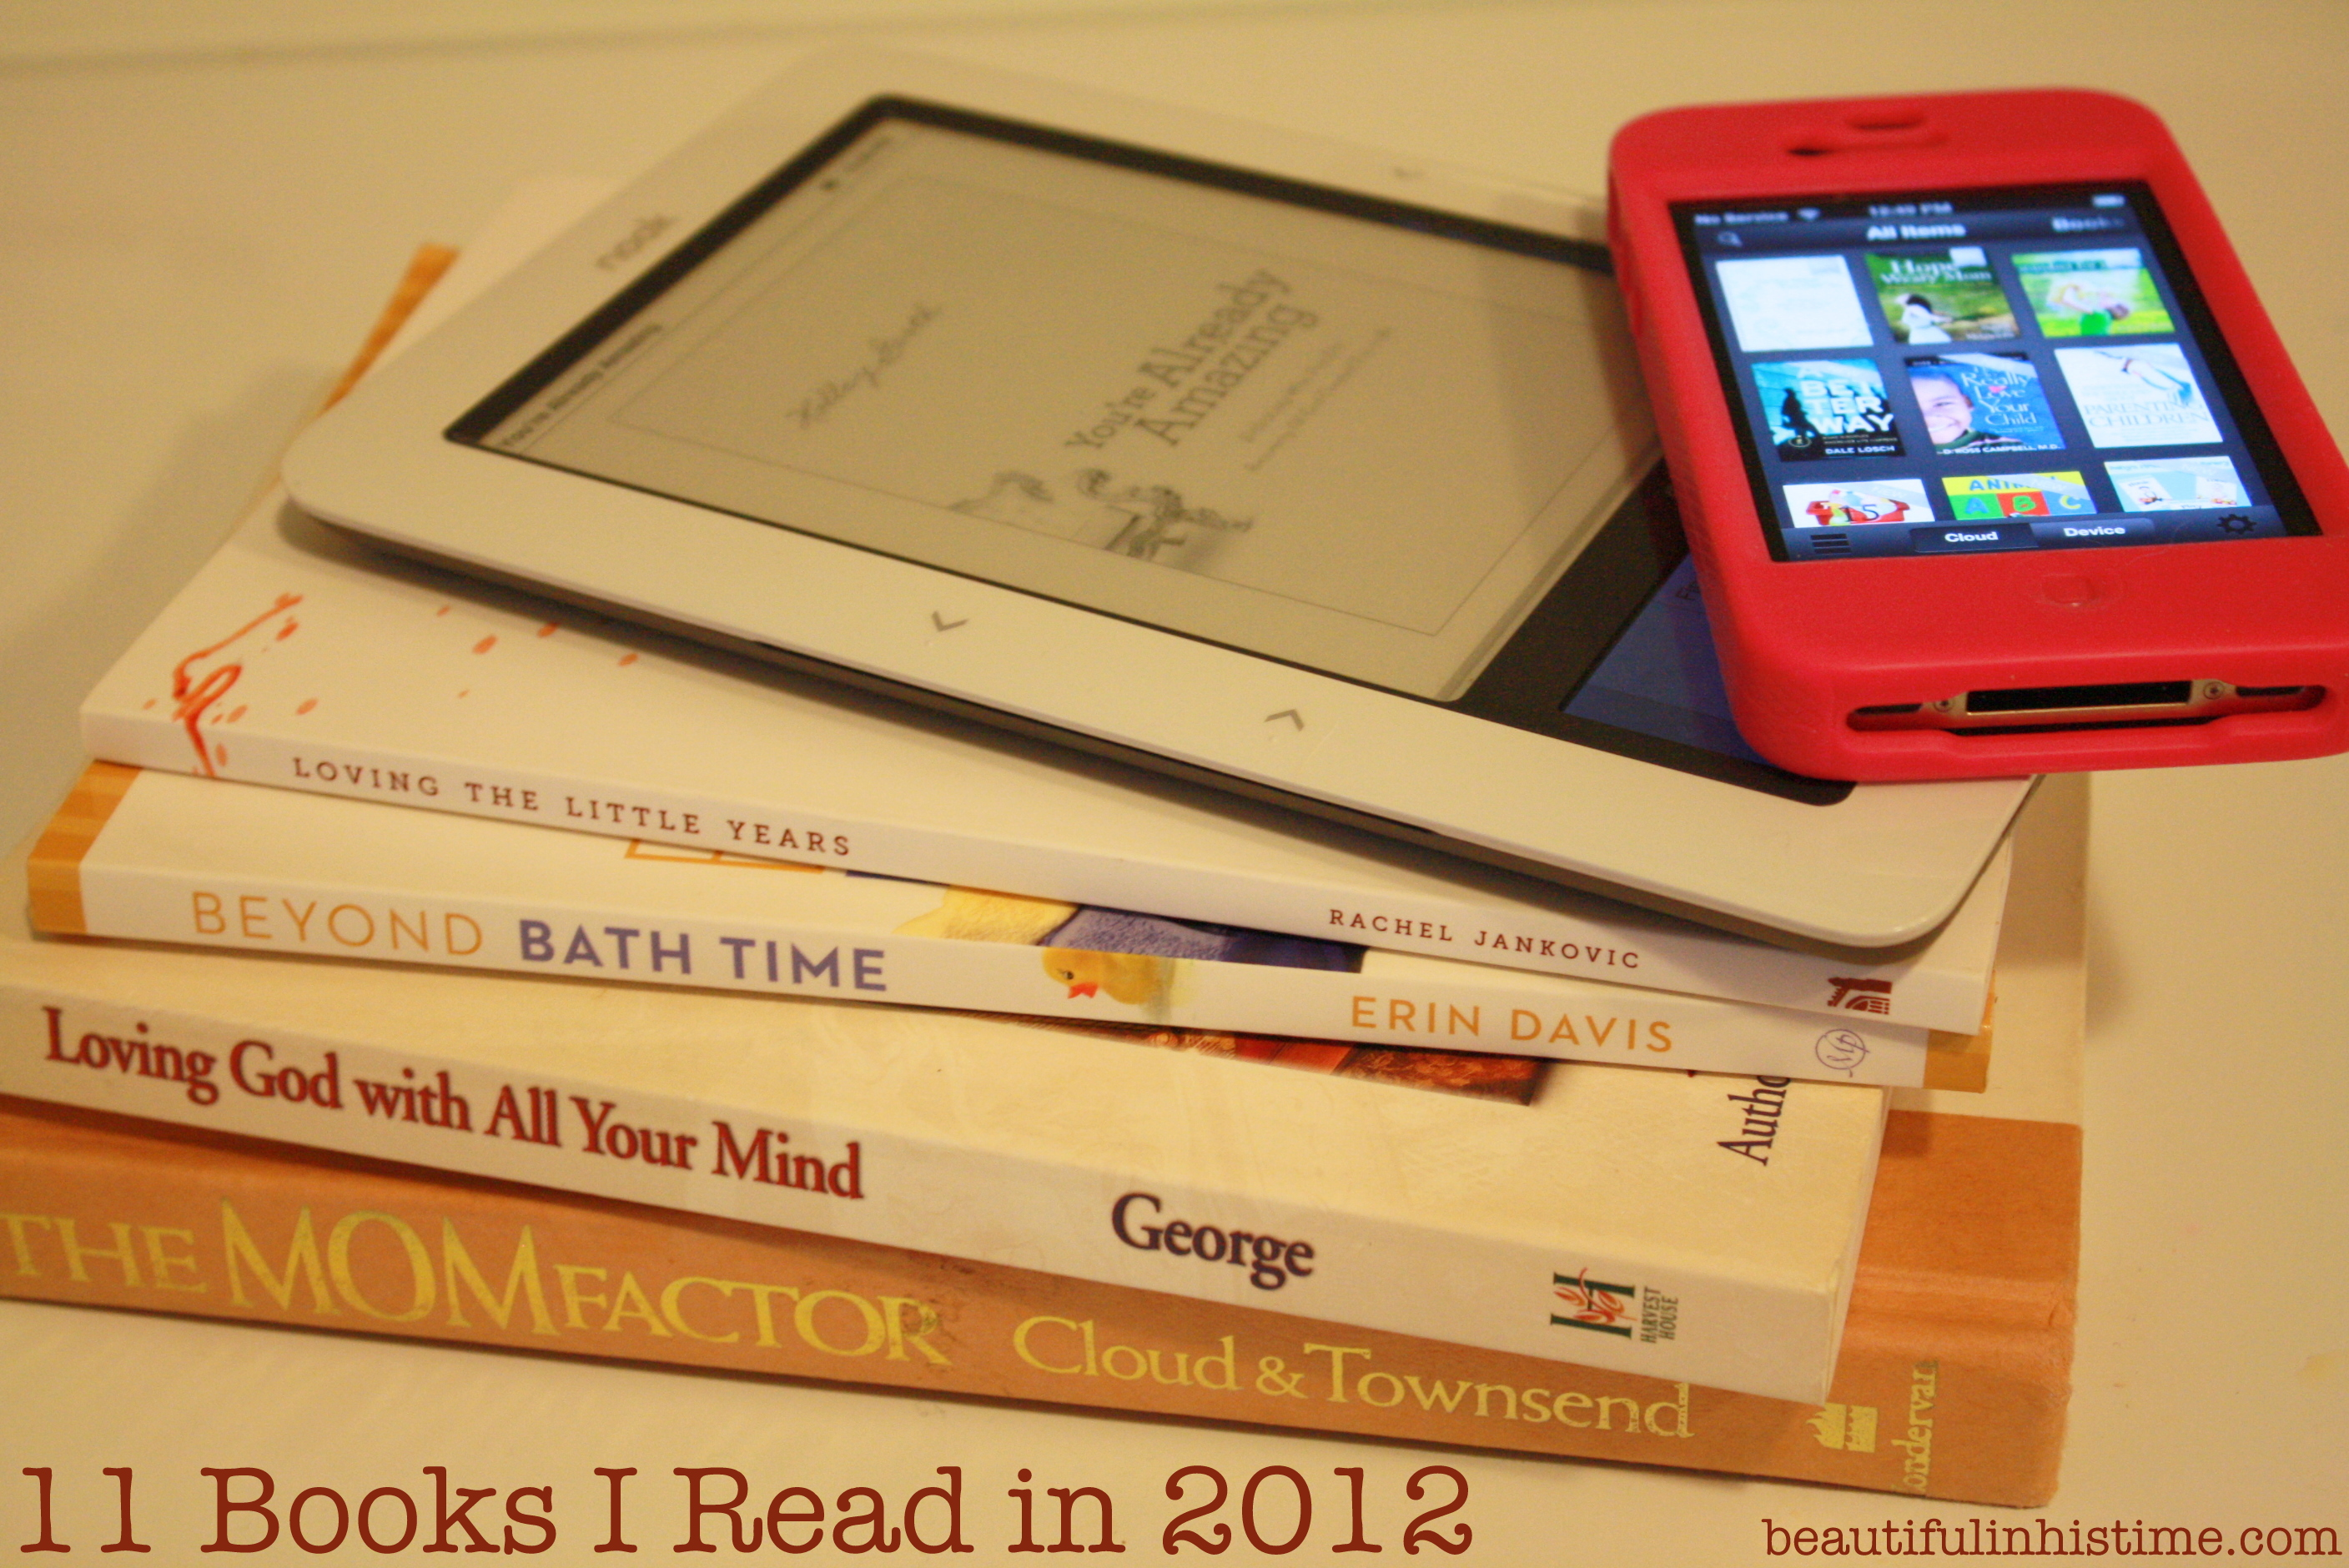 11 books I read in 2012